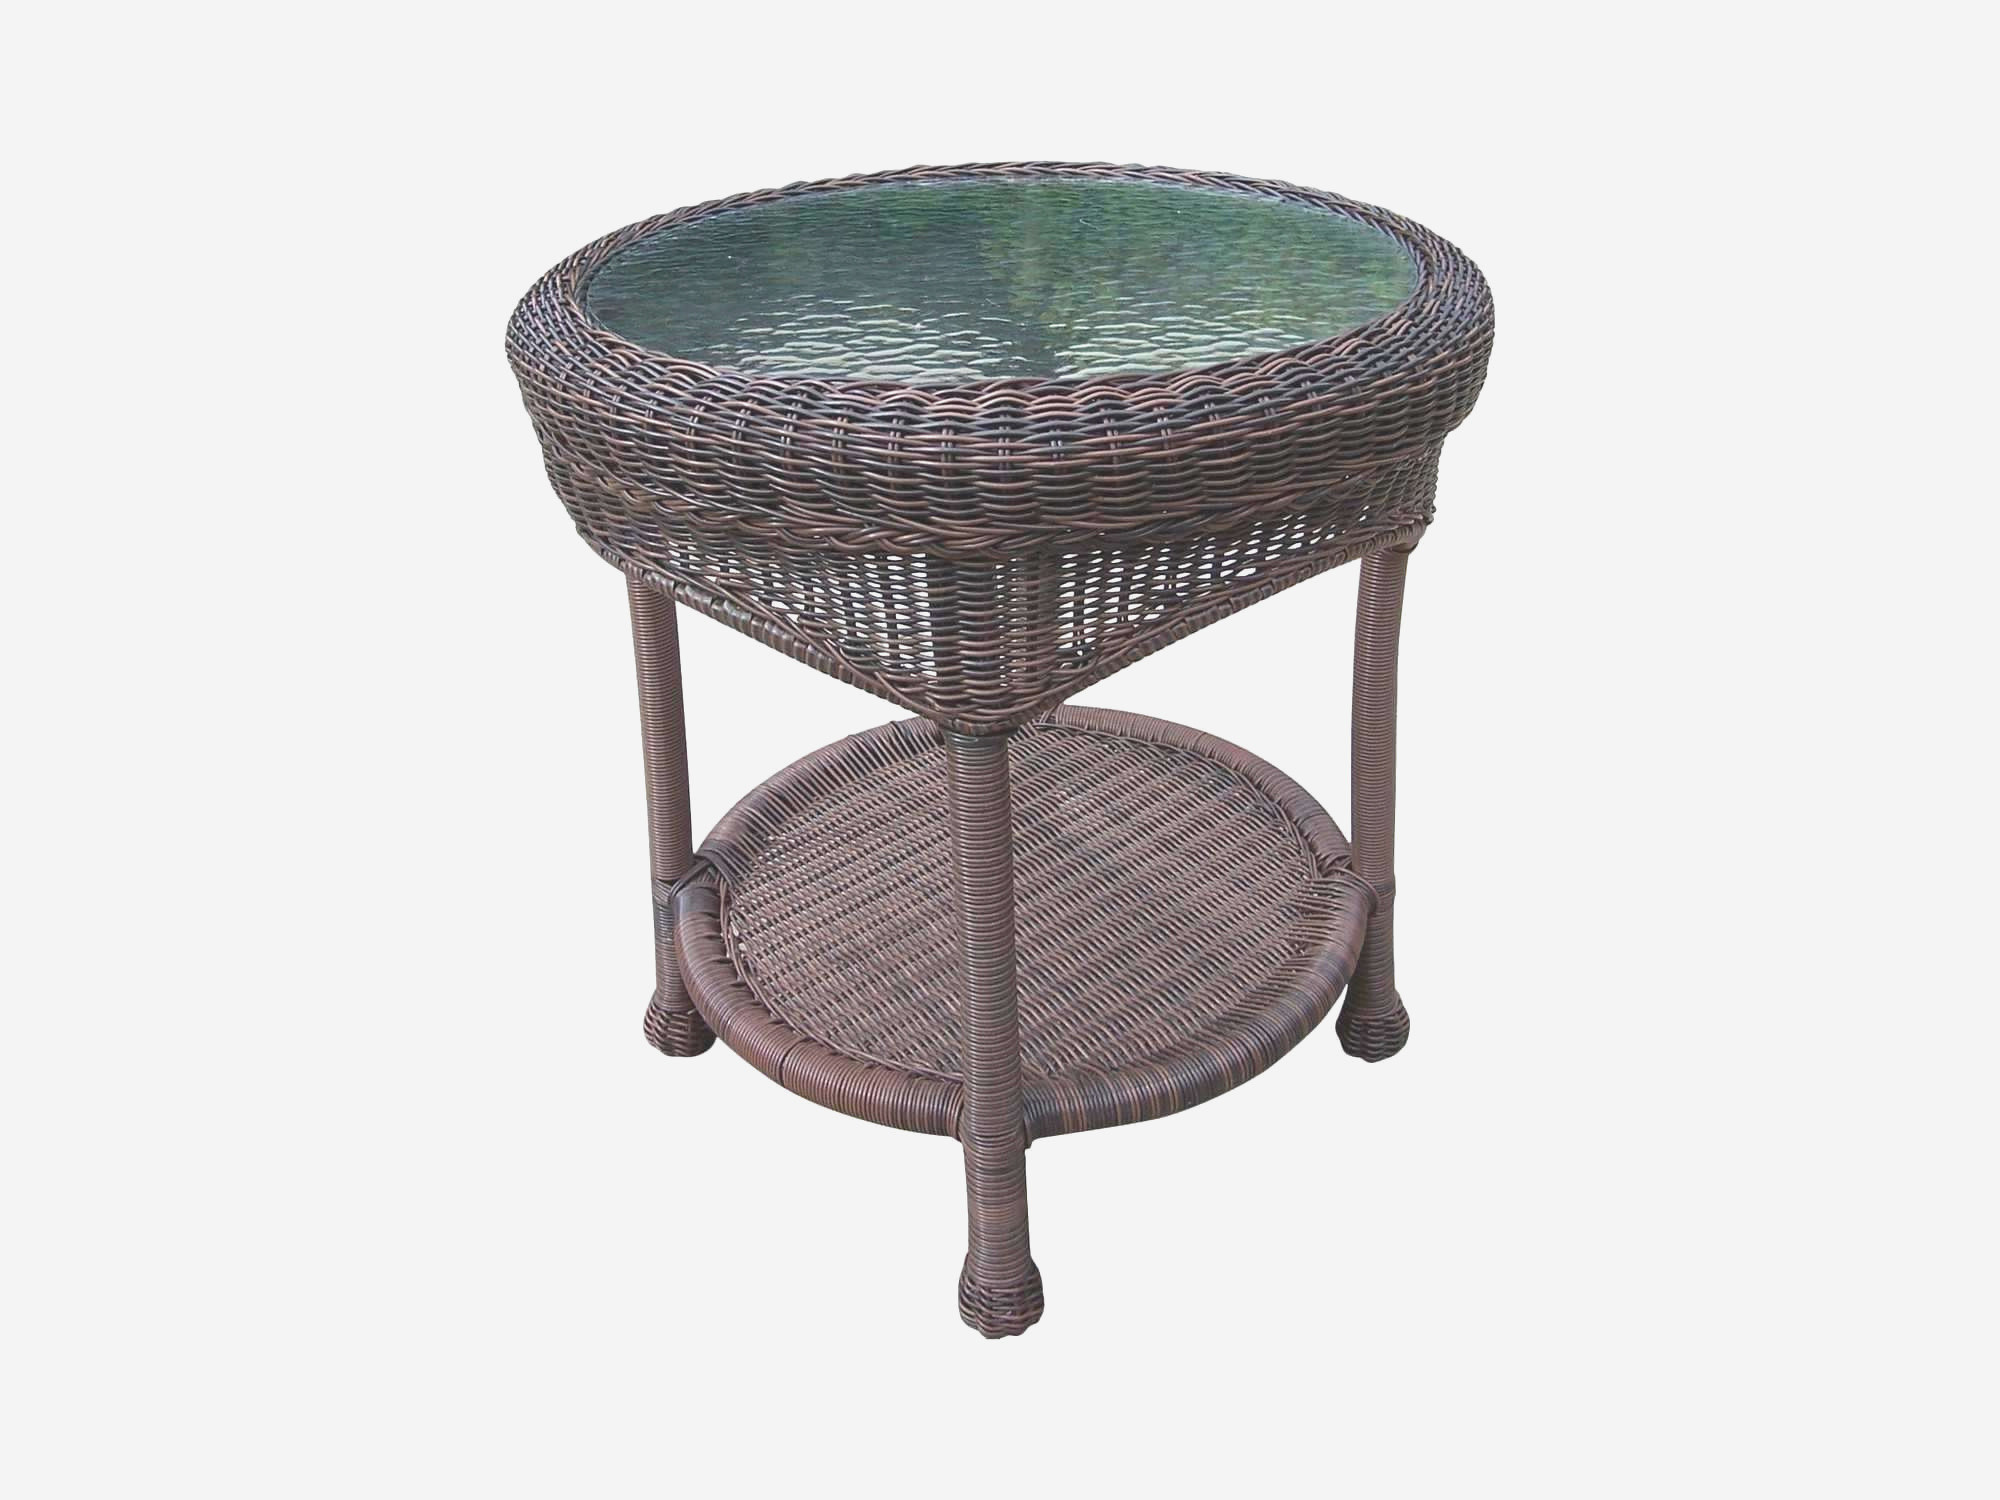 plastic outdoor side table luxury wicker tables fortable rowan small coffee accent vintage brass living room cabinets target black inch sofa nest with drawer wood dining legs